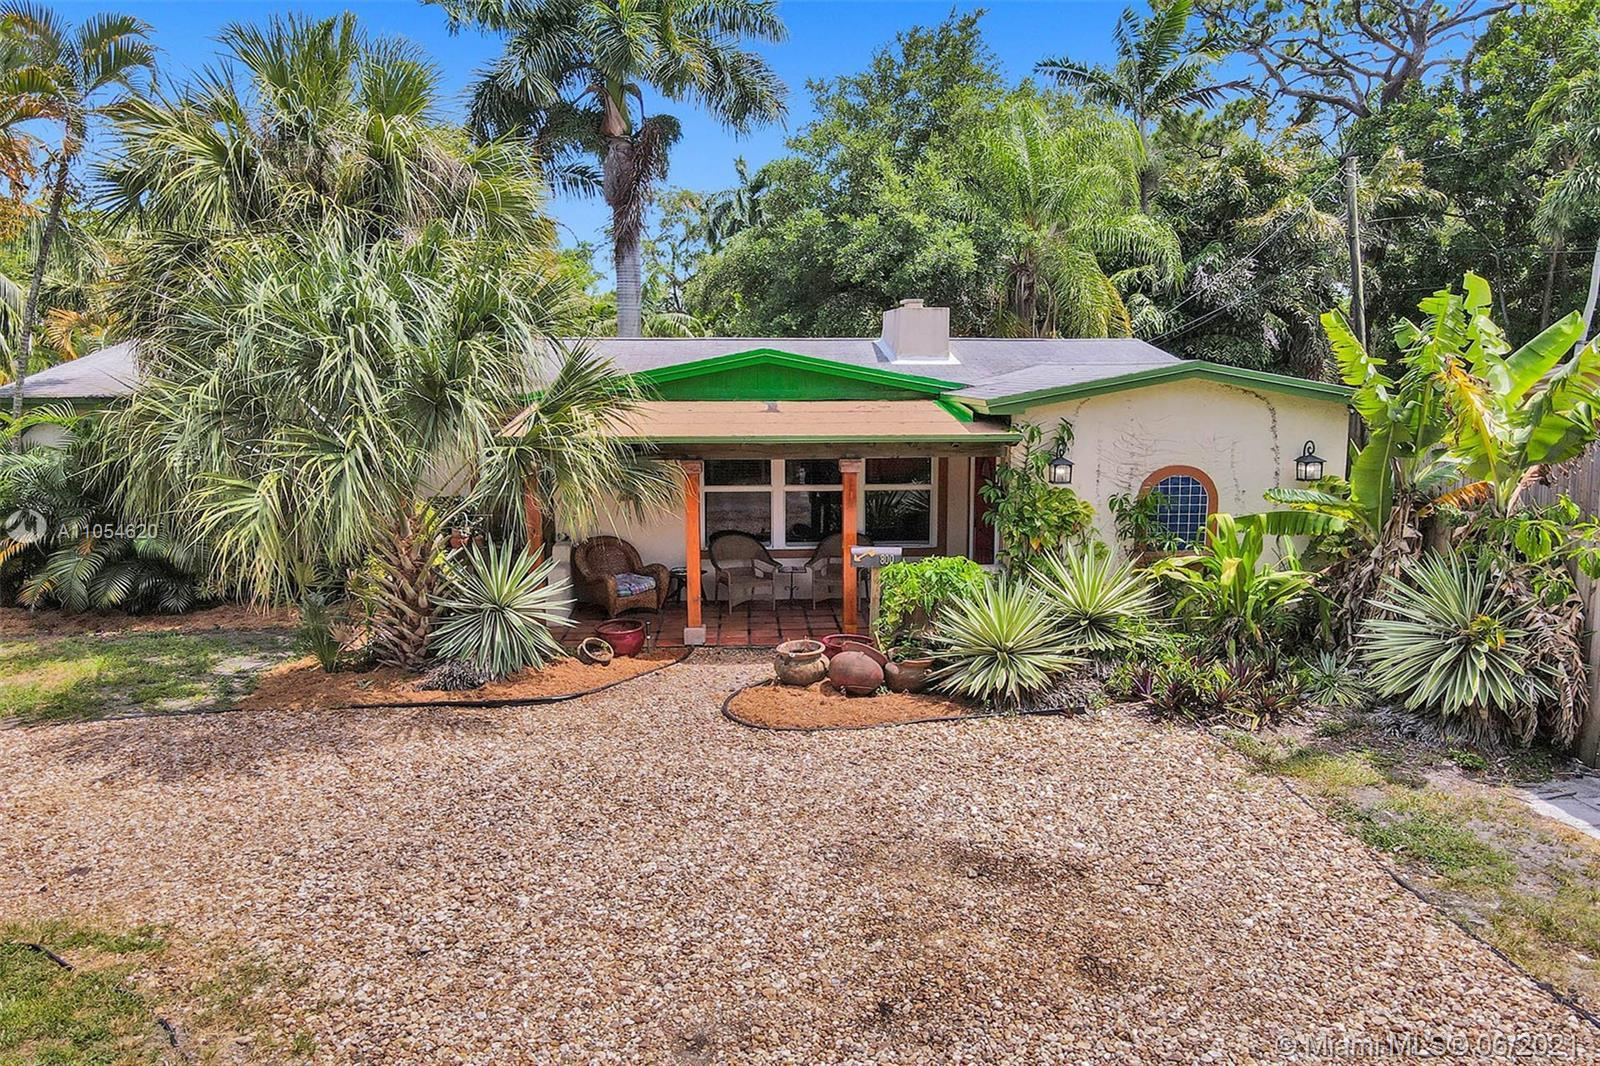 We are in Ft. Lauderdale's most charming neighborhood, Sailboat Bend! Situated on a corner lot, this